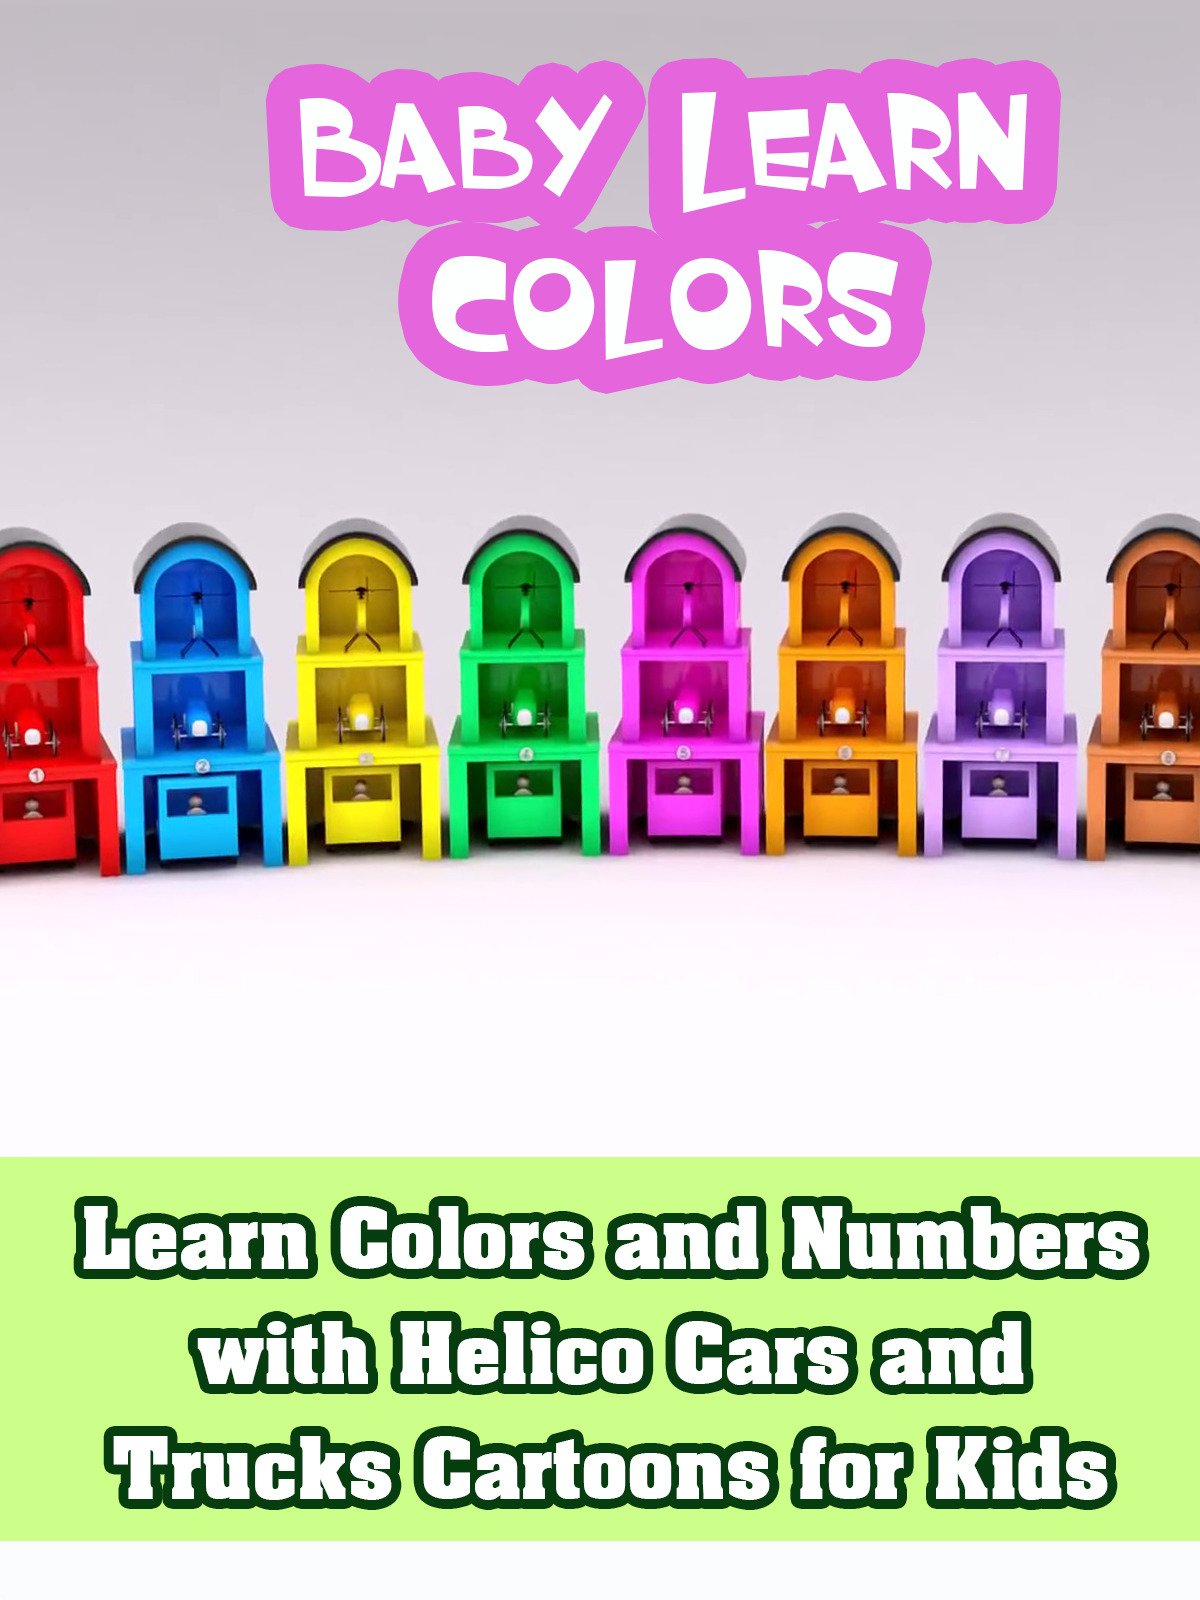 Learn Colors and Numbers with Helico Cars and Trucks Cartoons for Kids on Amazon Prime Video UK